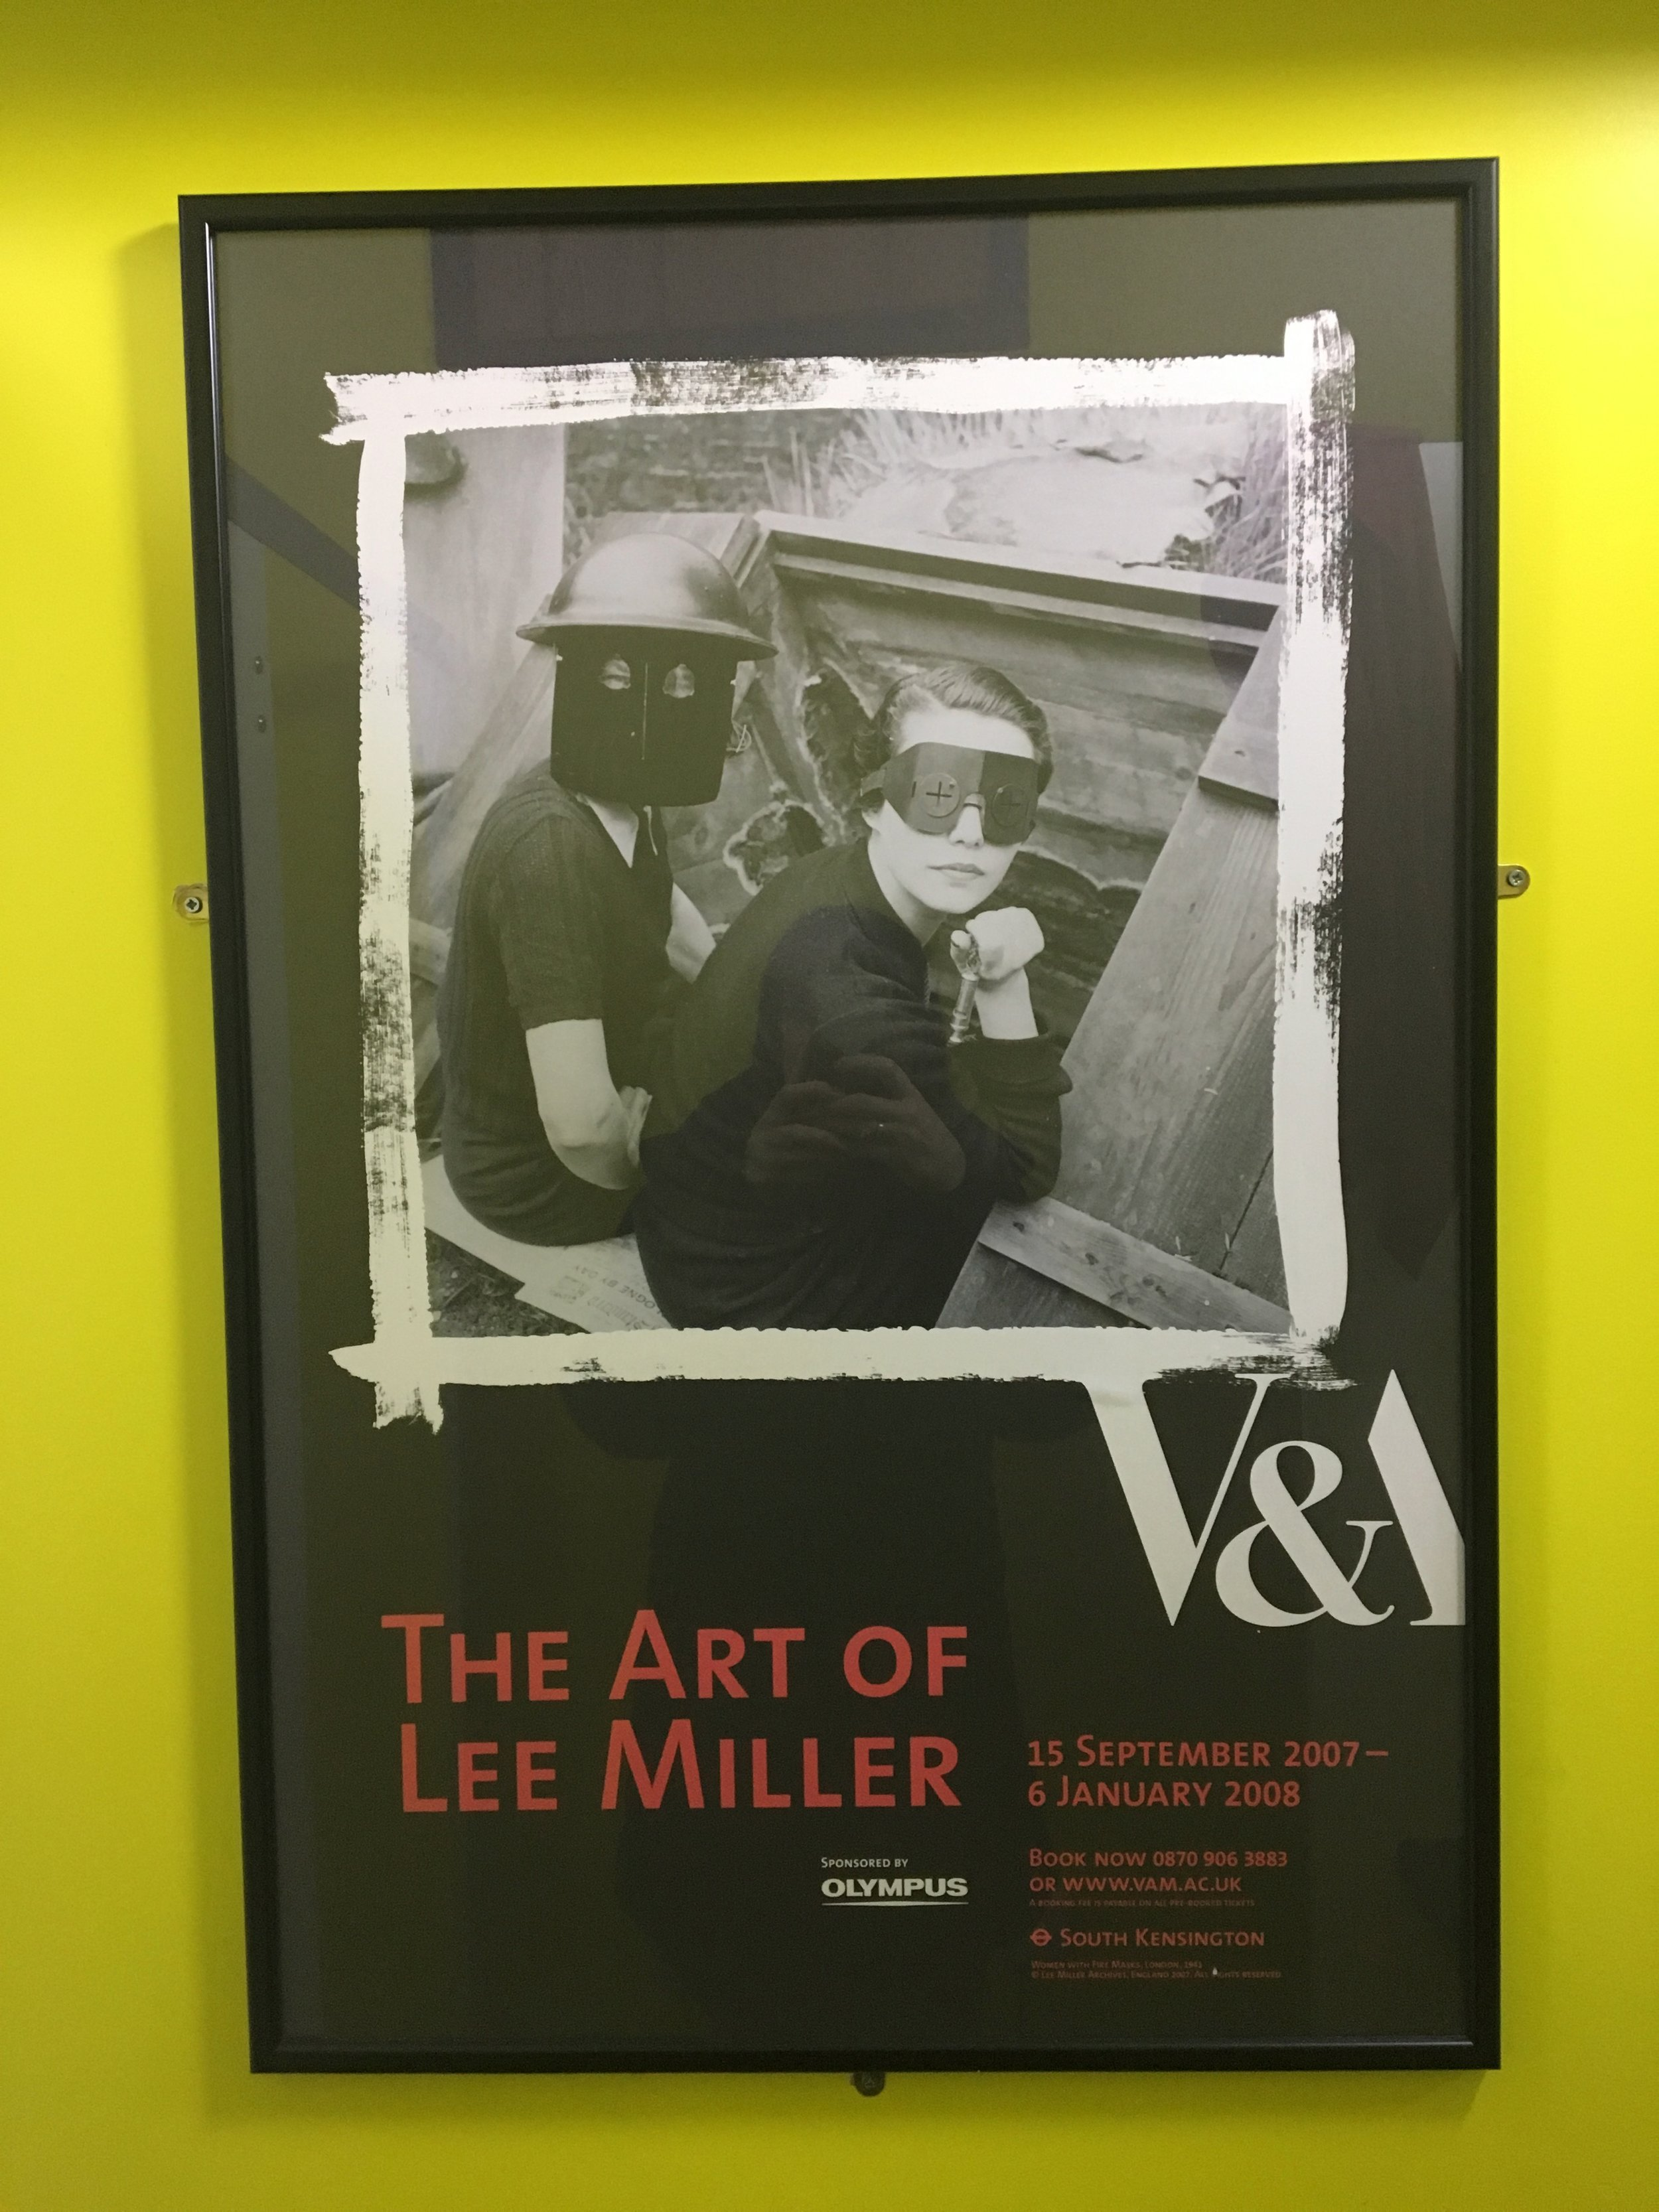 Poster for the 2007 exhibition The Art of Lee Miller at The V&A